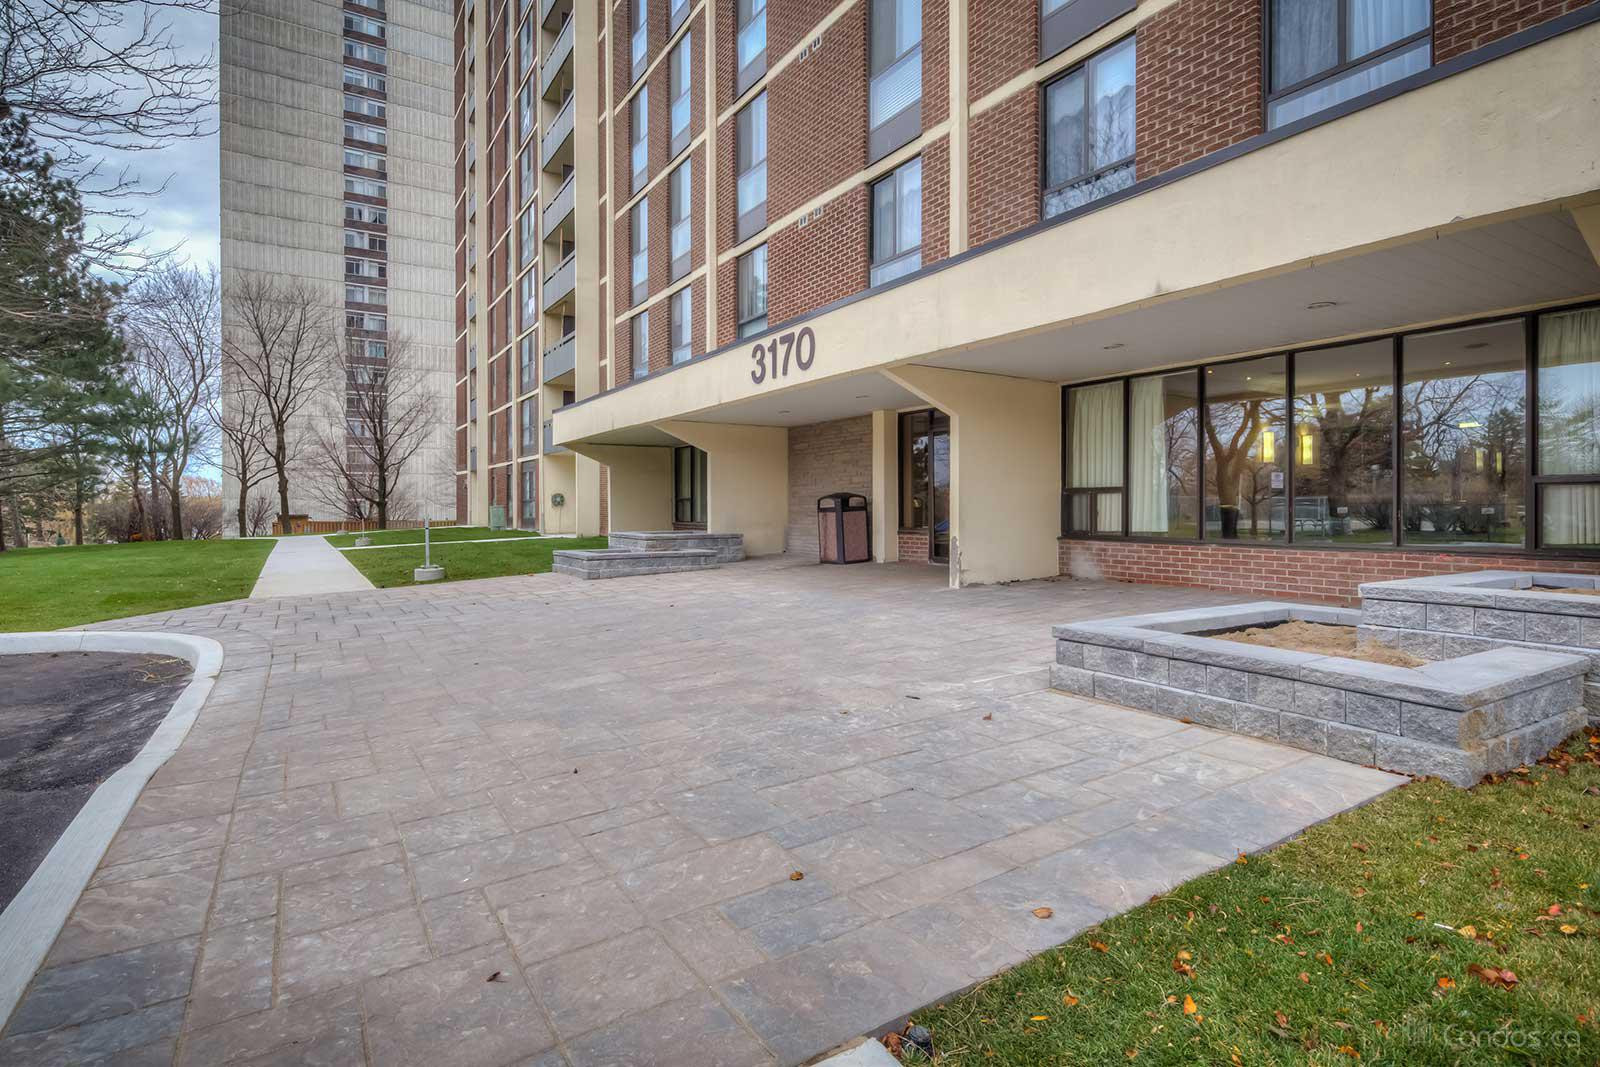 3170 Kirwin Condos at 3170 Kirwin Ave, Mississauga 1